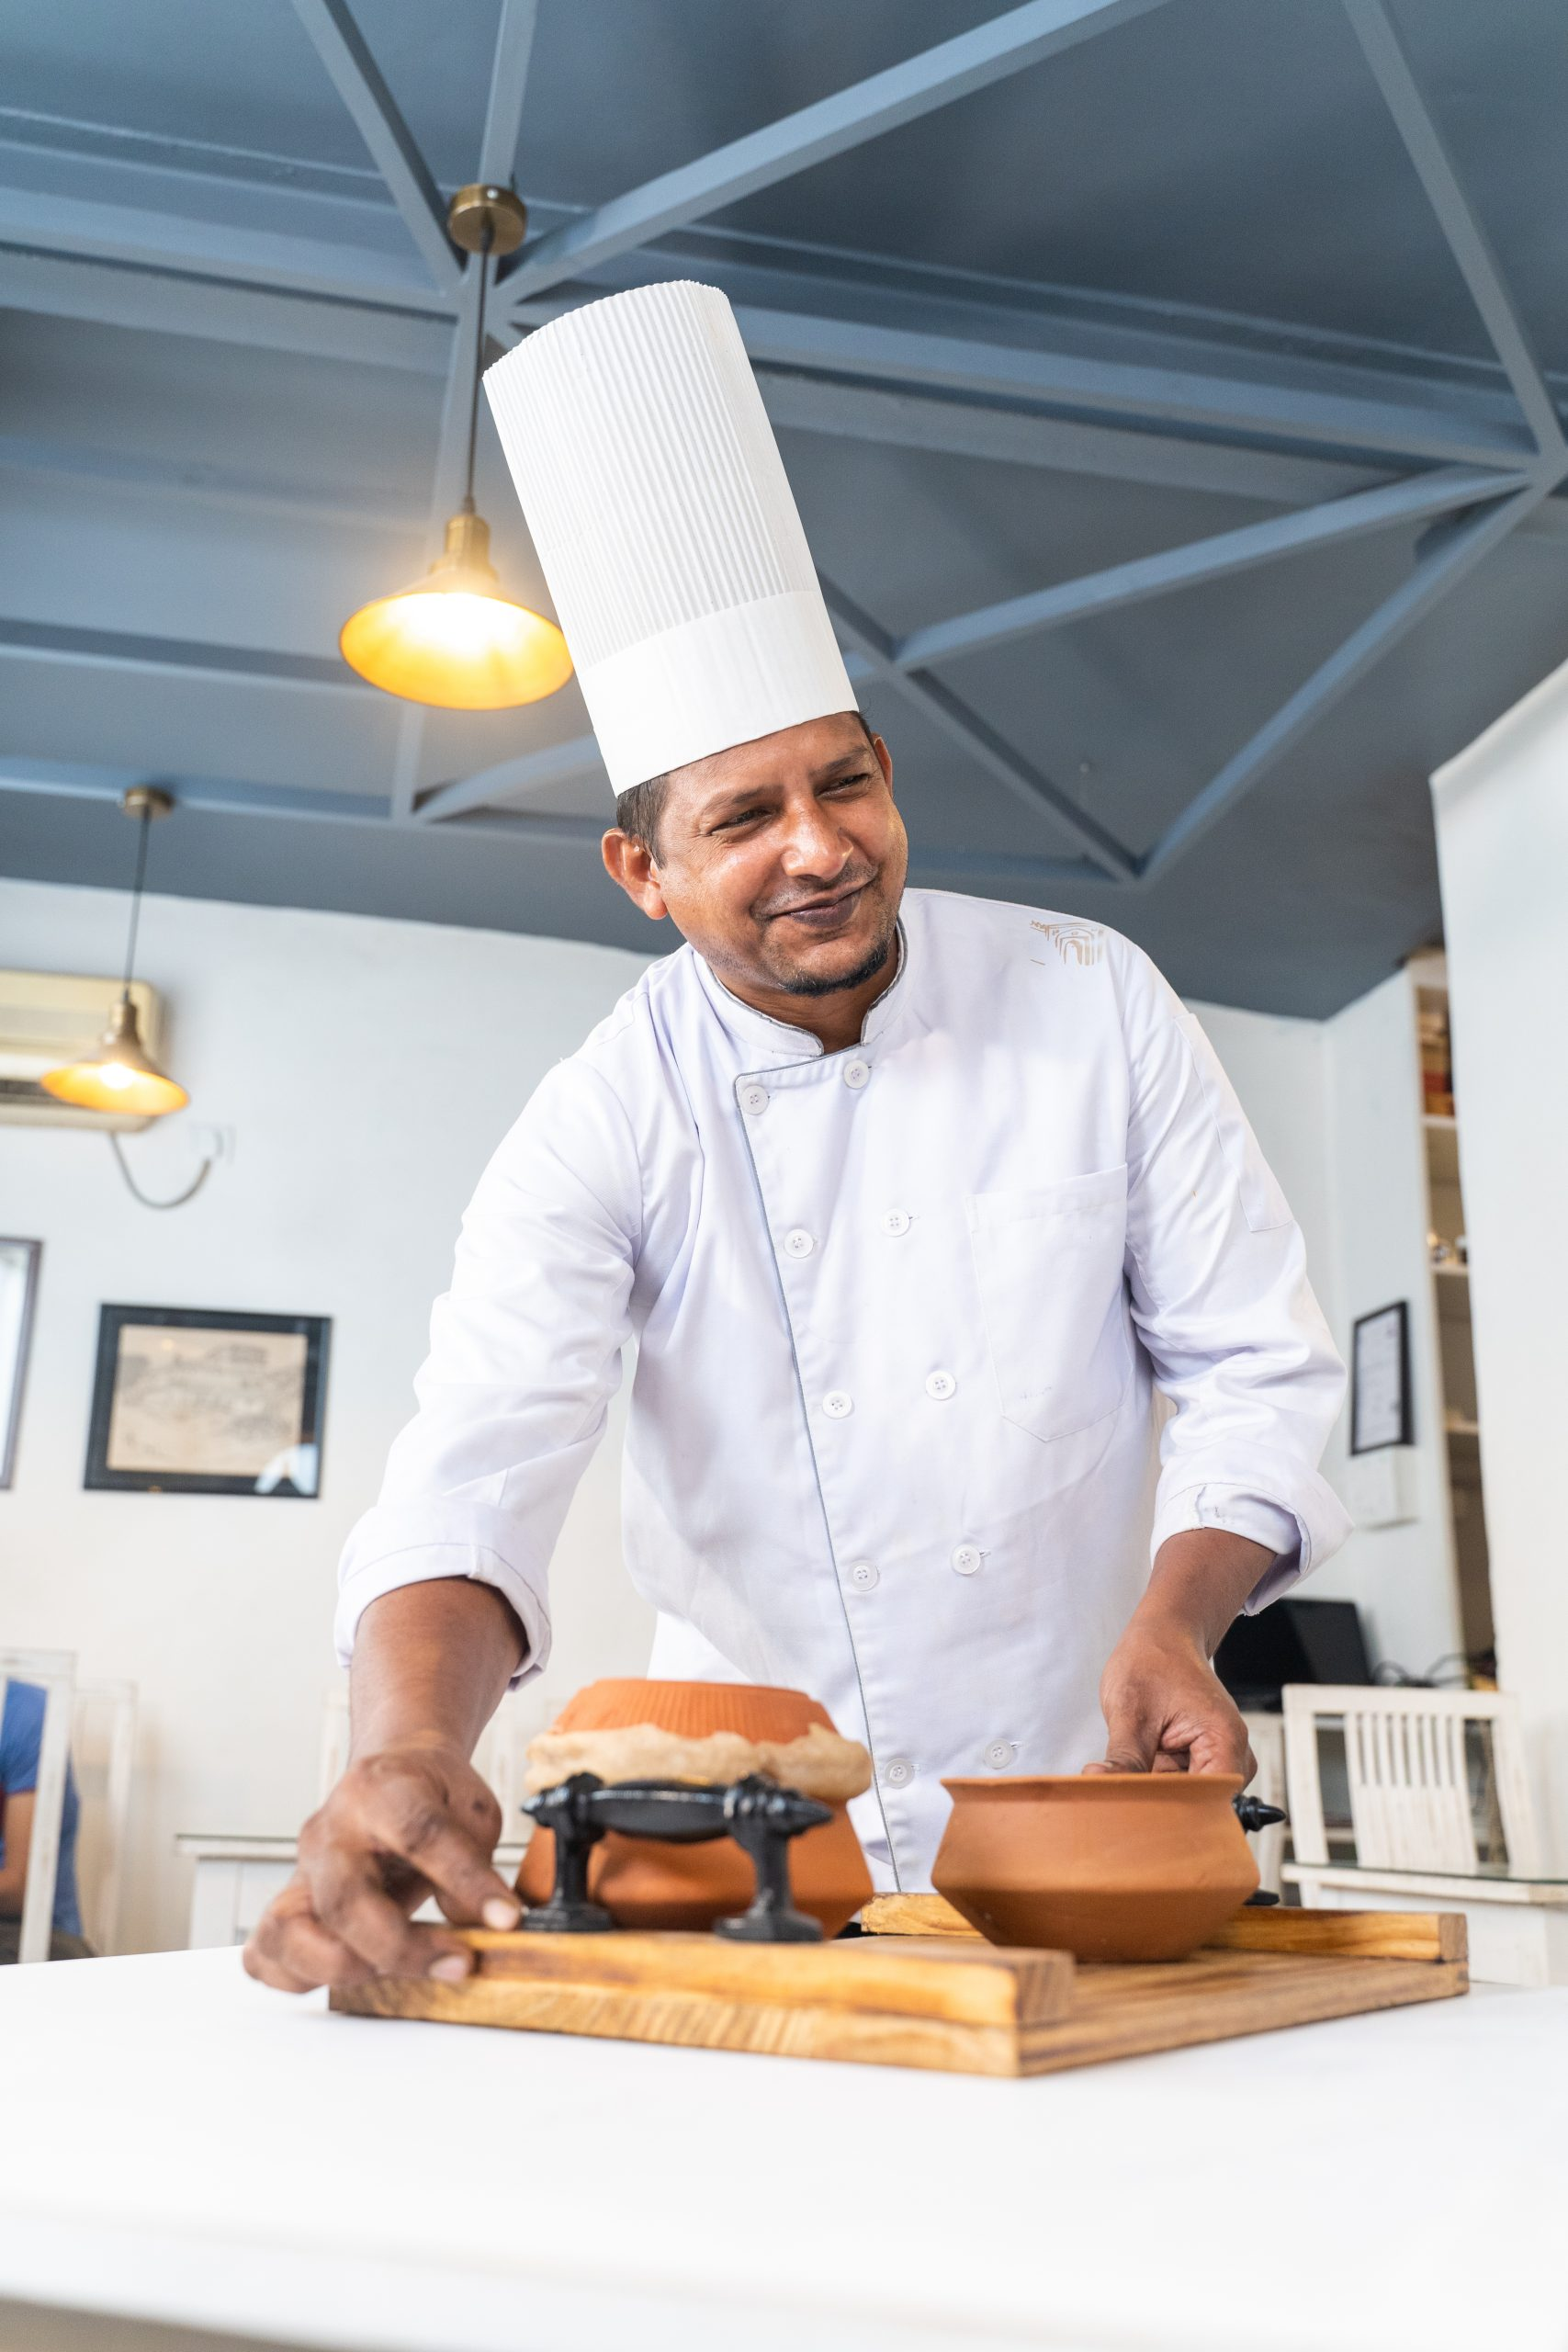 Chef smiling while offering food